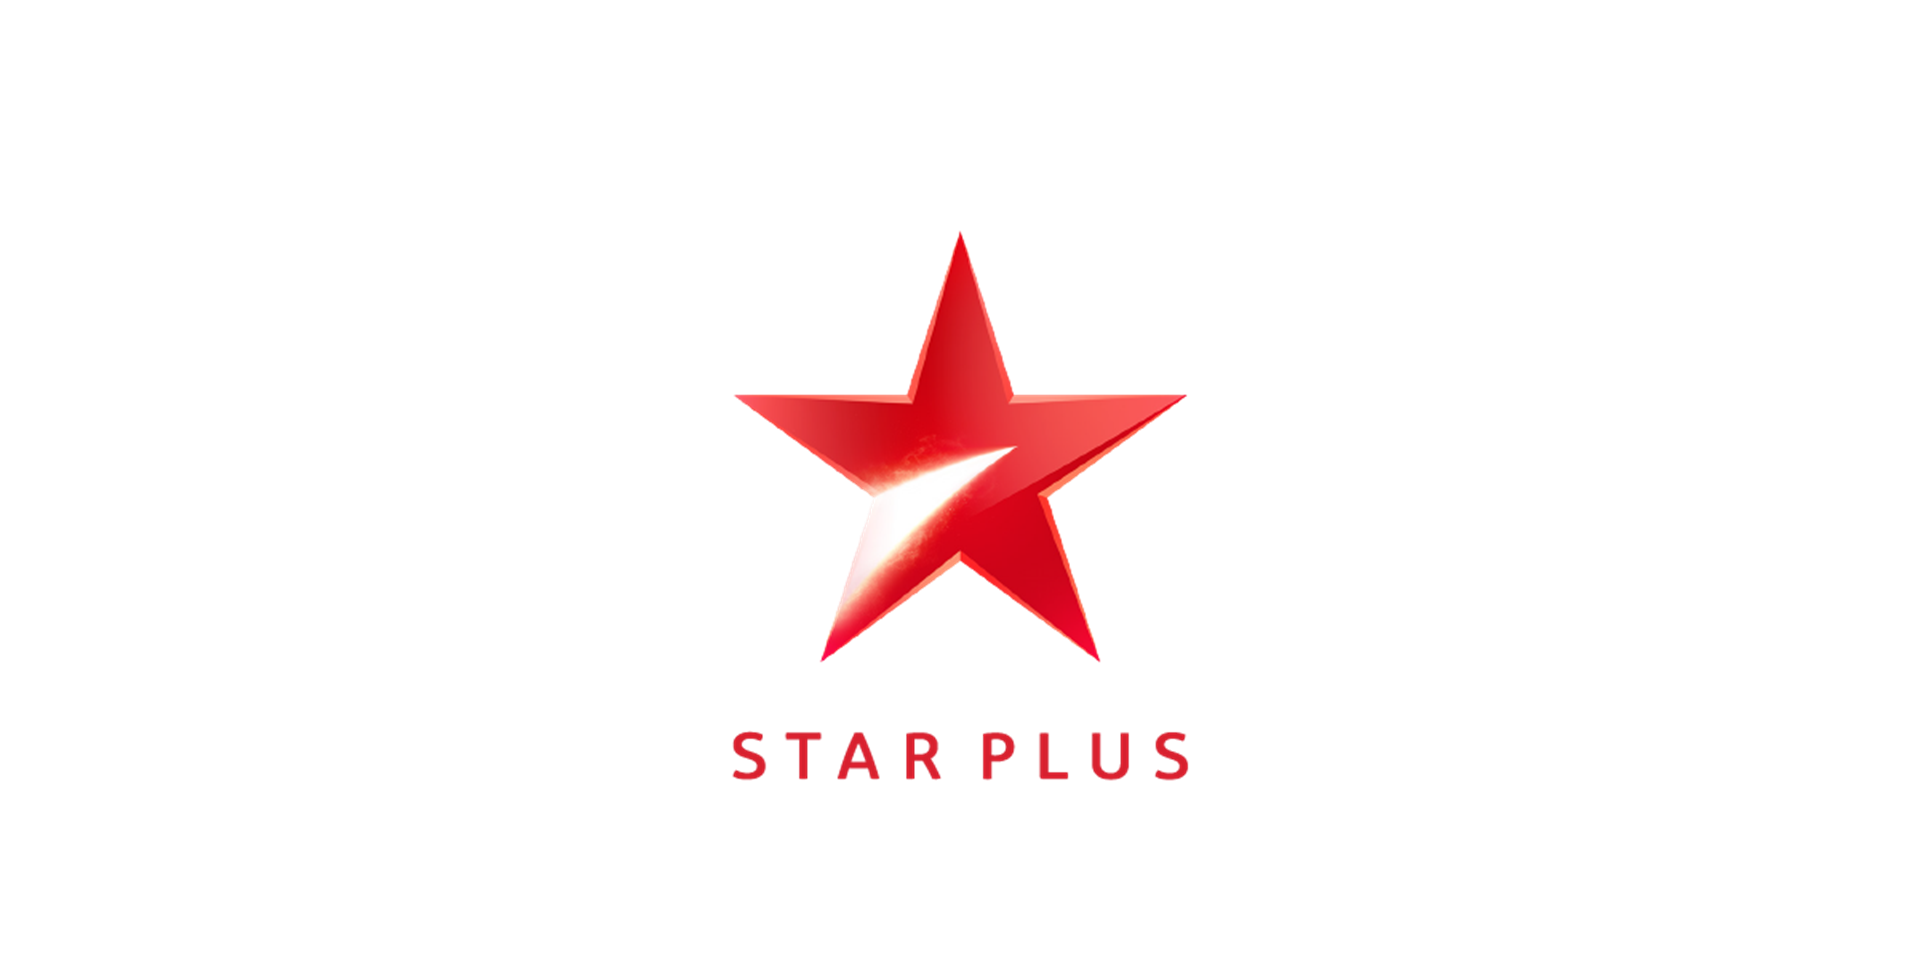 Star plus logo png. Ddf exclusive repository for